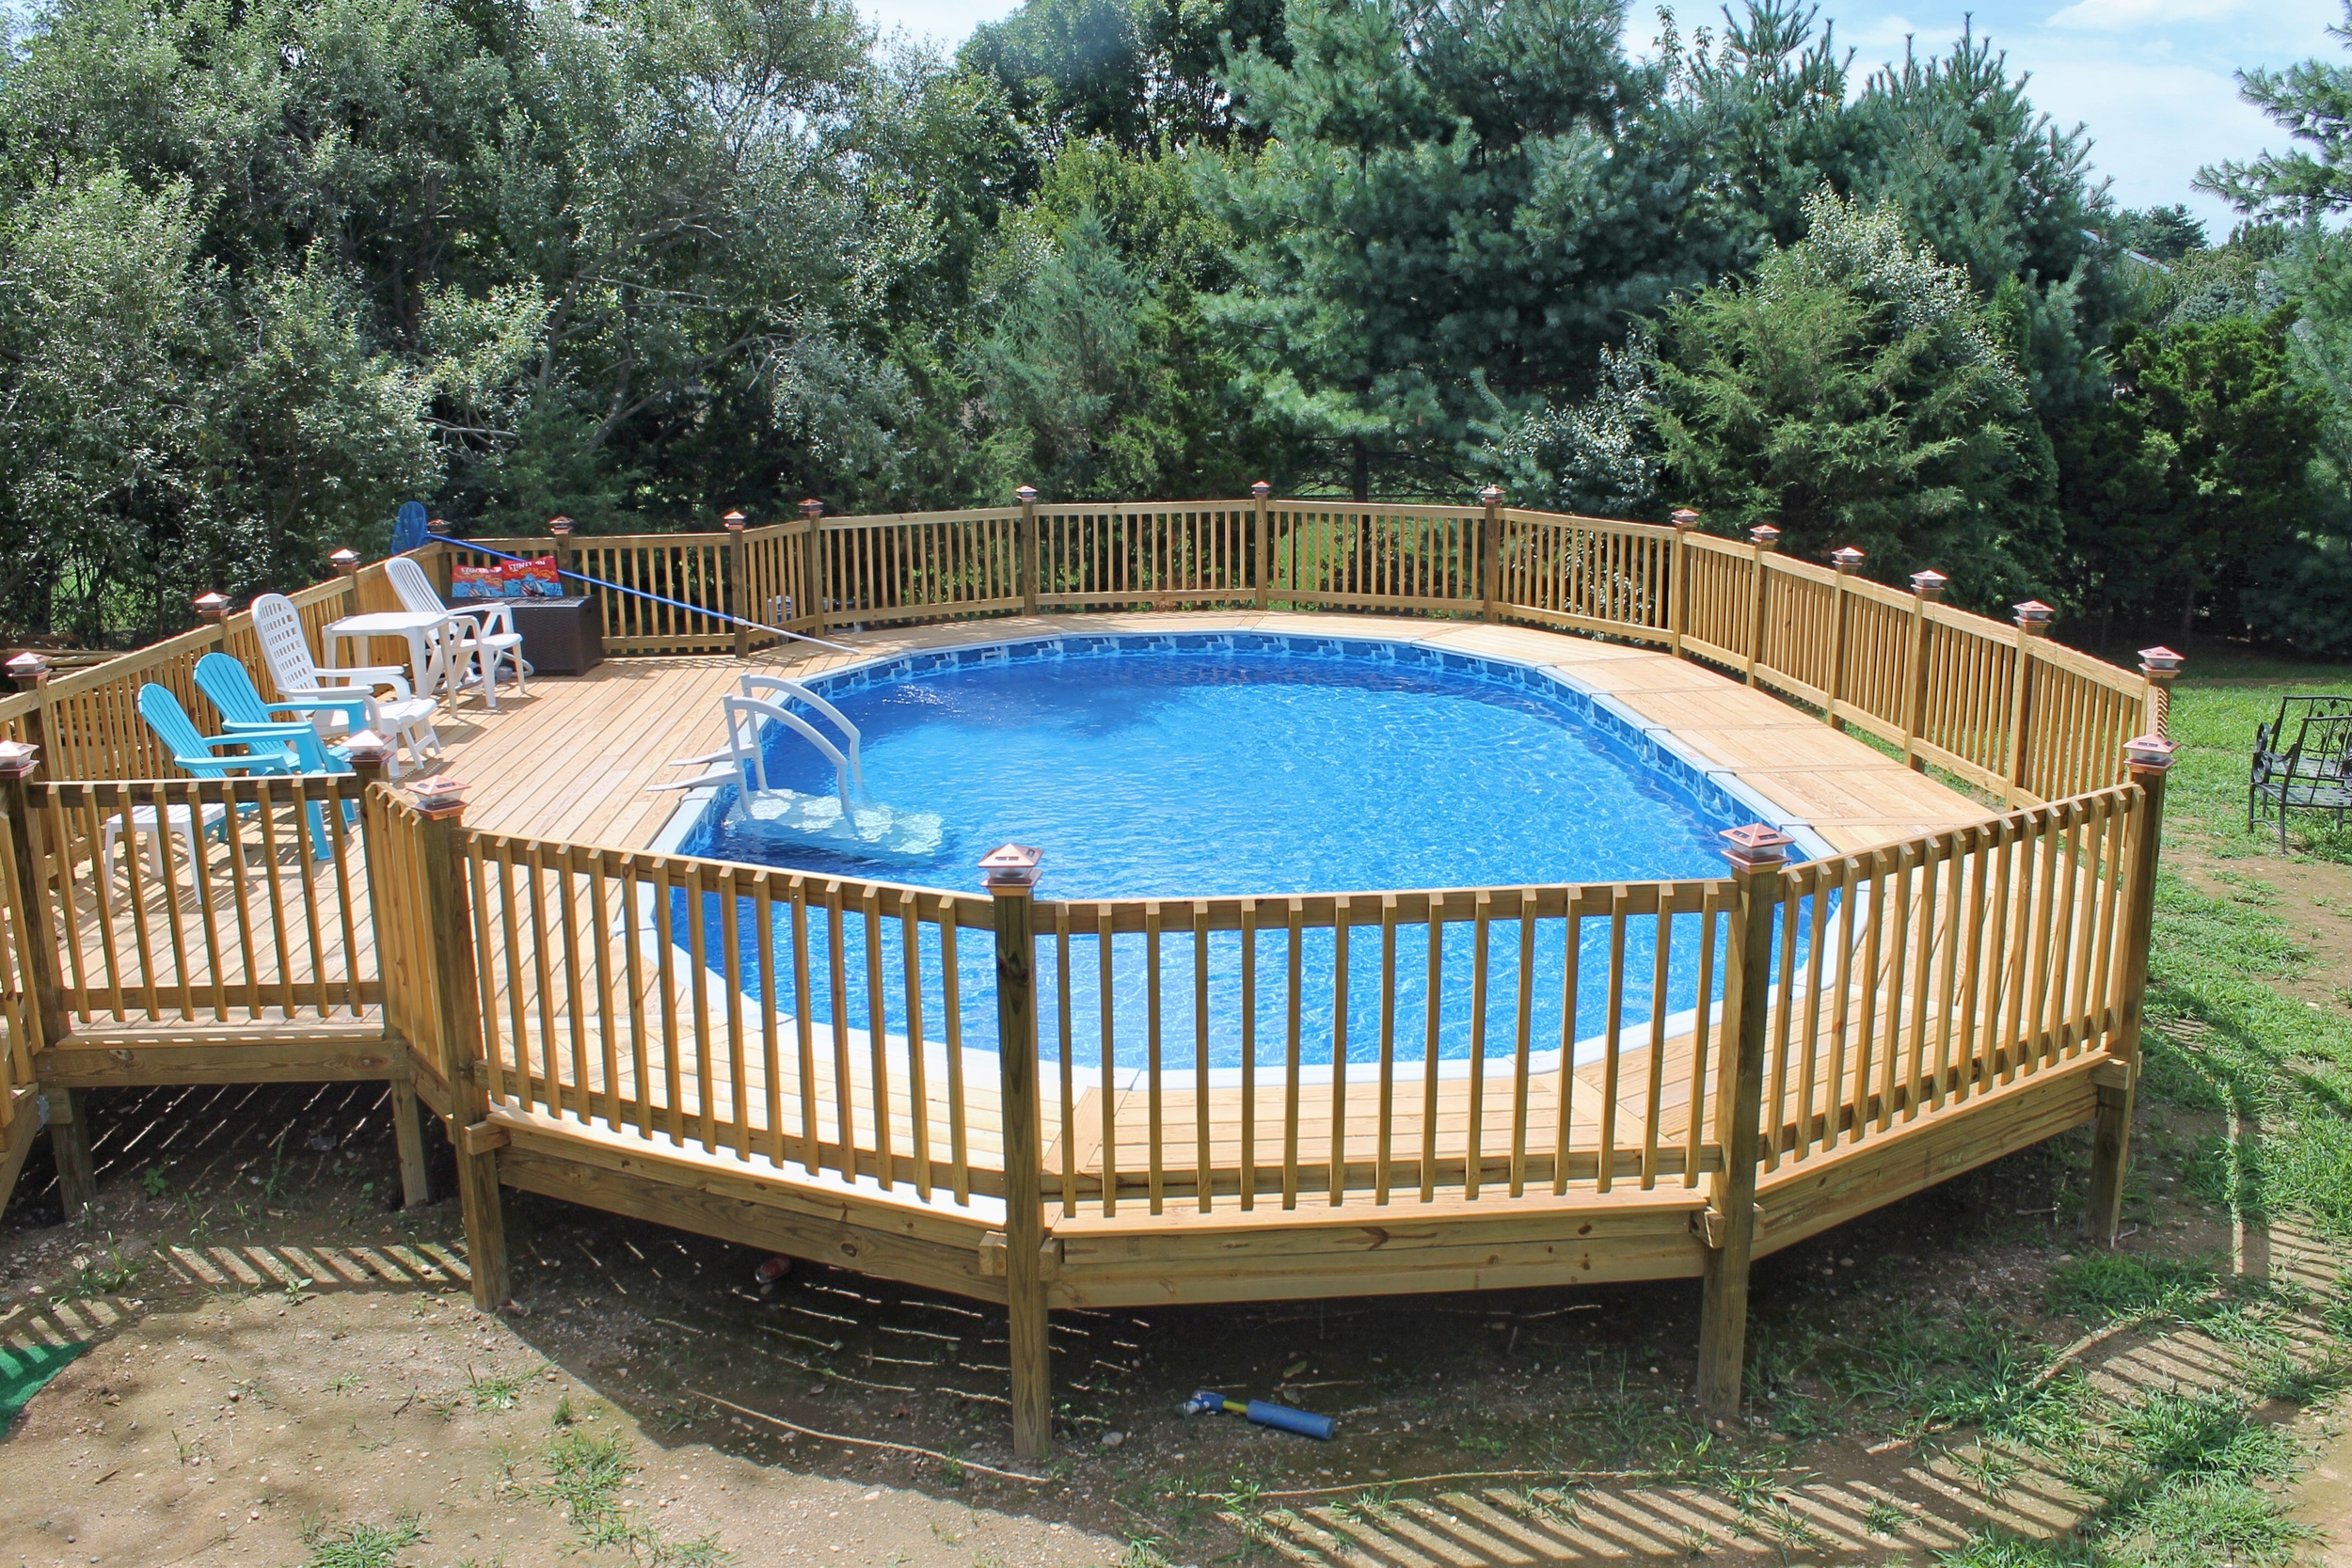 Above Ground Pools Blue Water Spas, How To Install An Above Ground Oval Pool